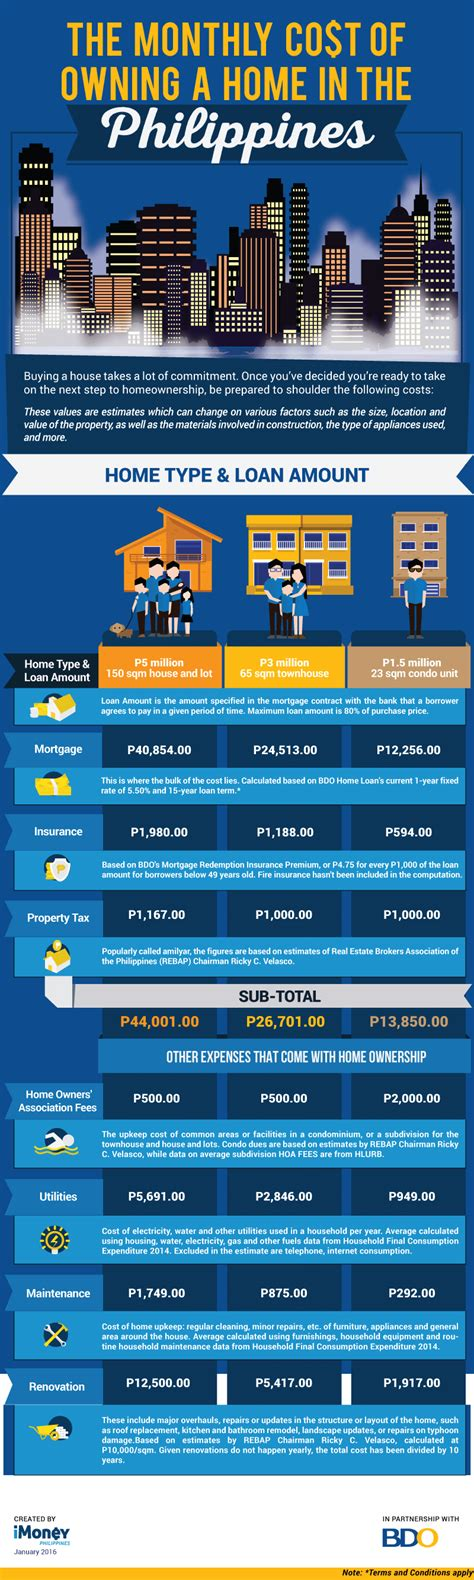 learn the monthly cost of owning a home in the philippines